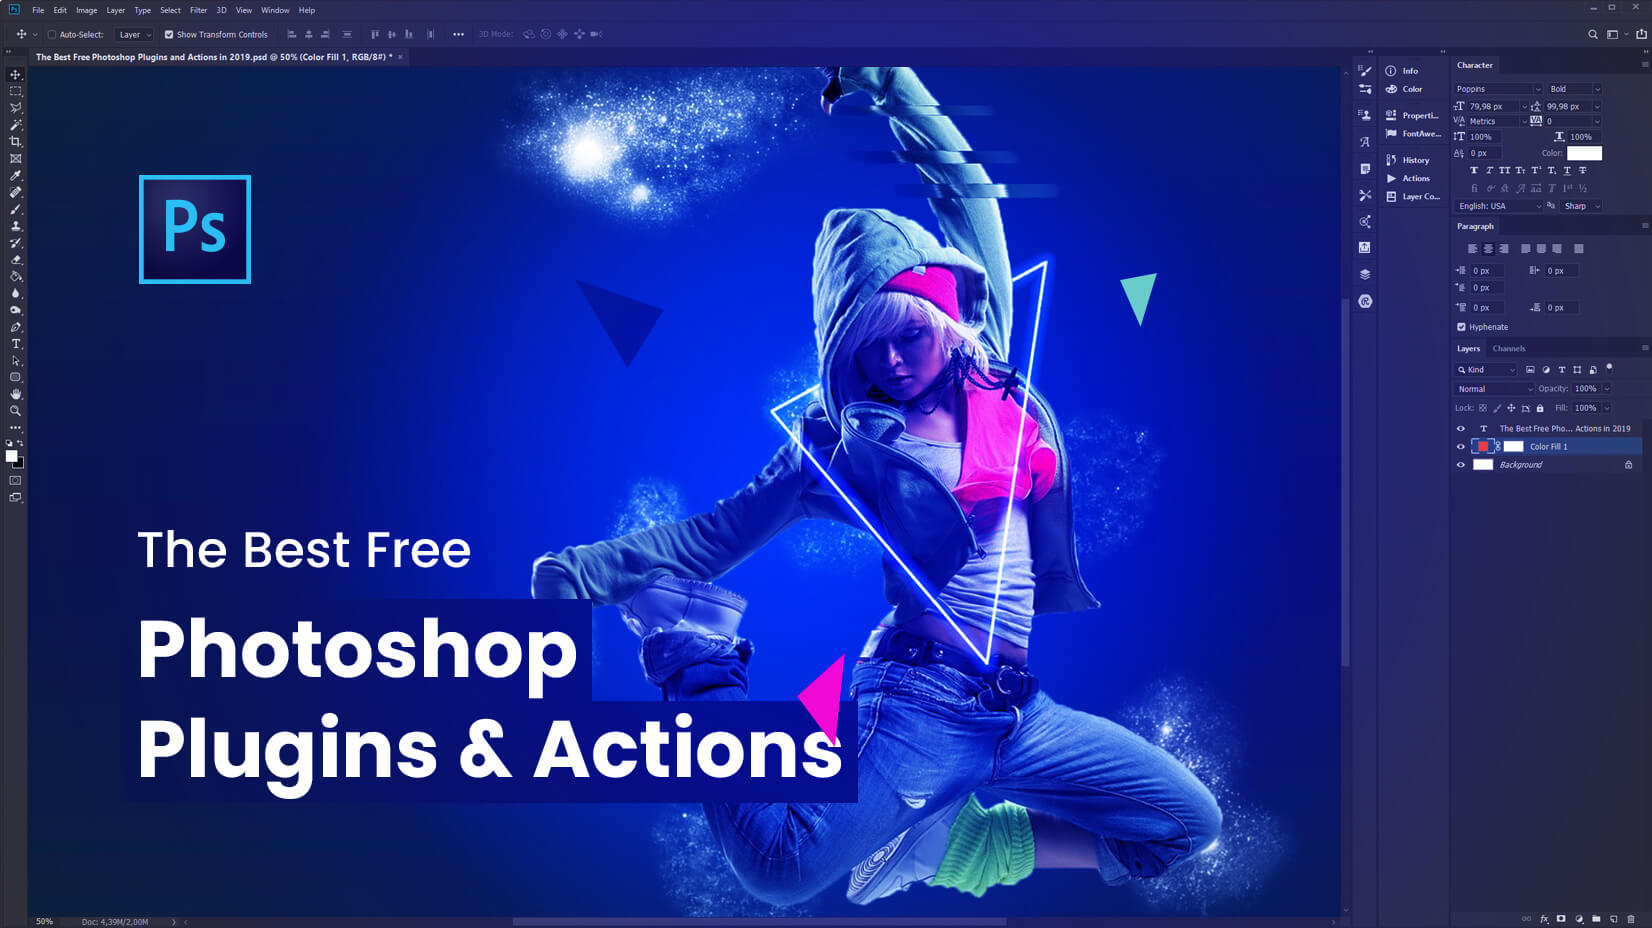 The Best Free Photoshop Plugins & Actions to Get Now | GraphicMama Blog